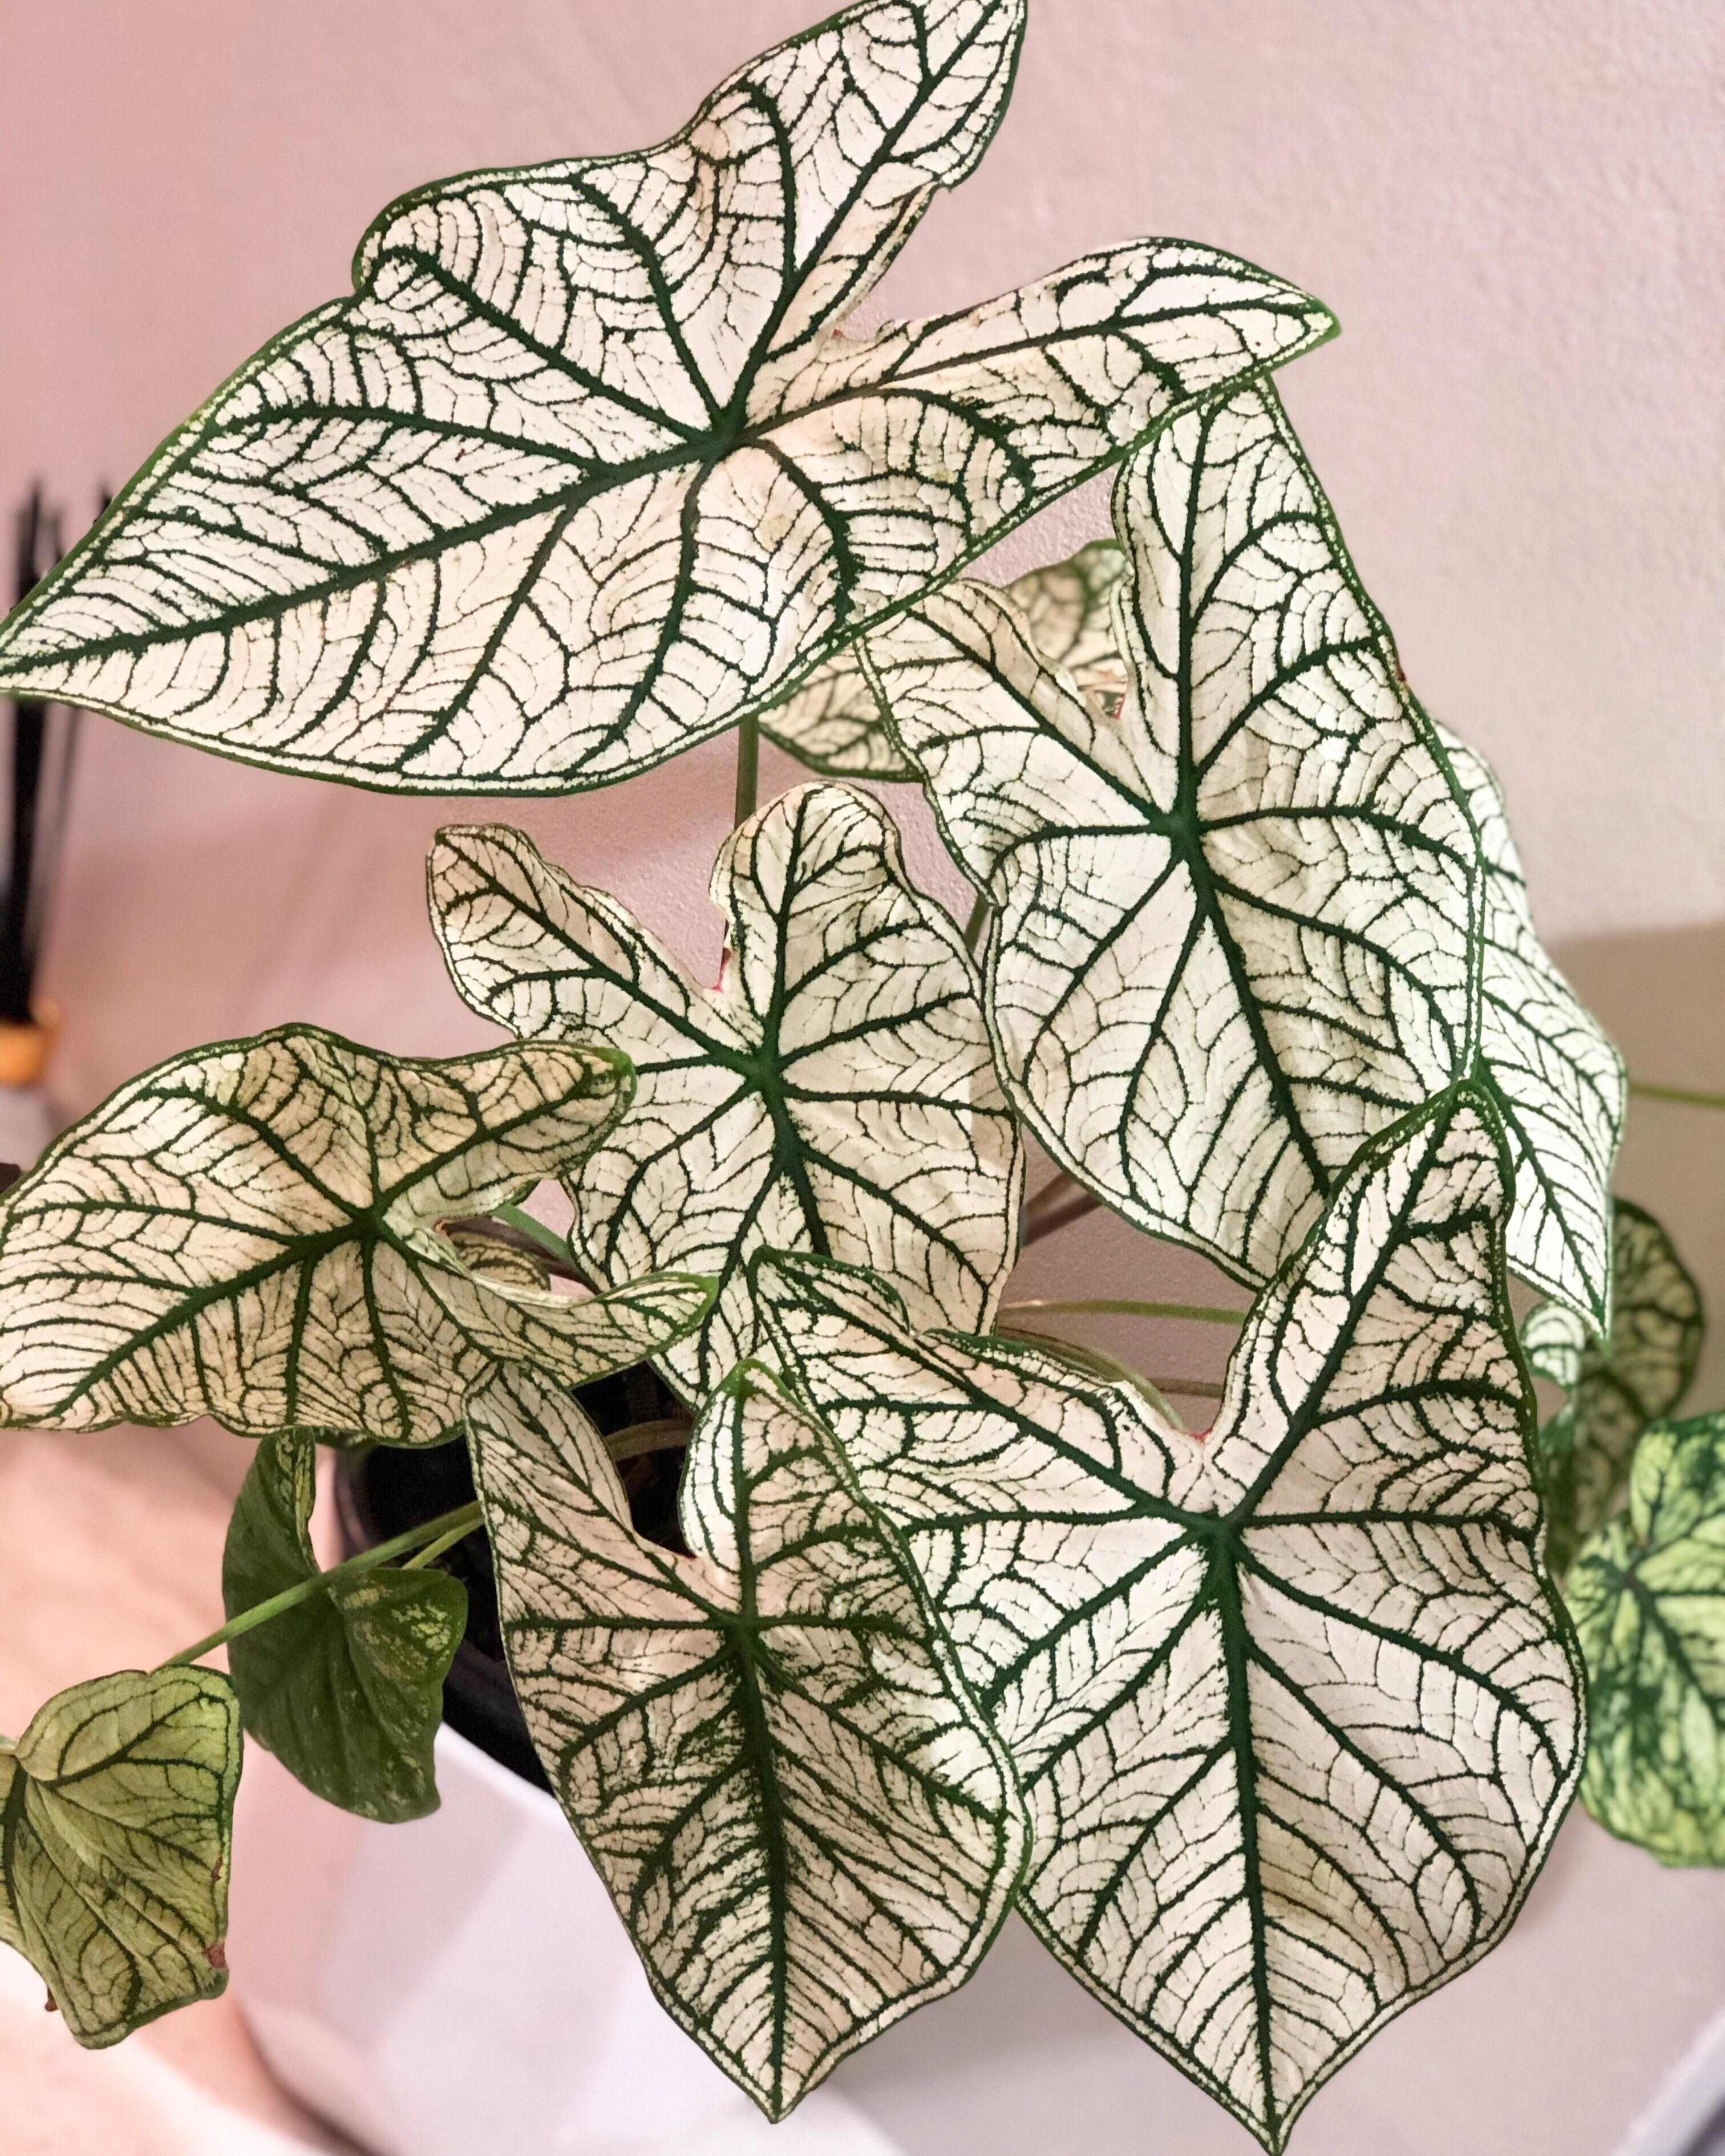 caladium white christmas Google Search in 2020